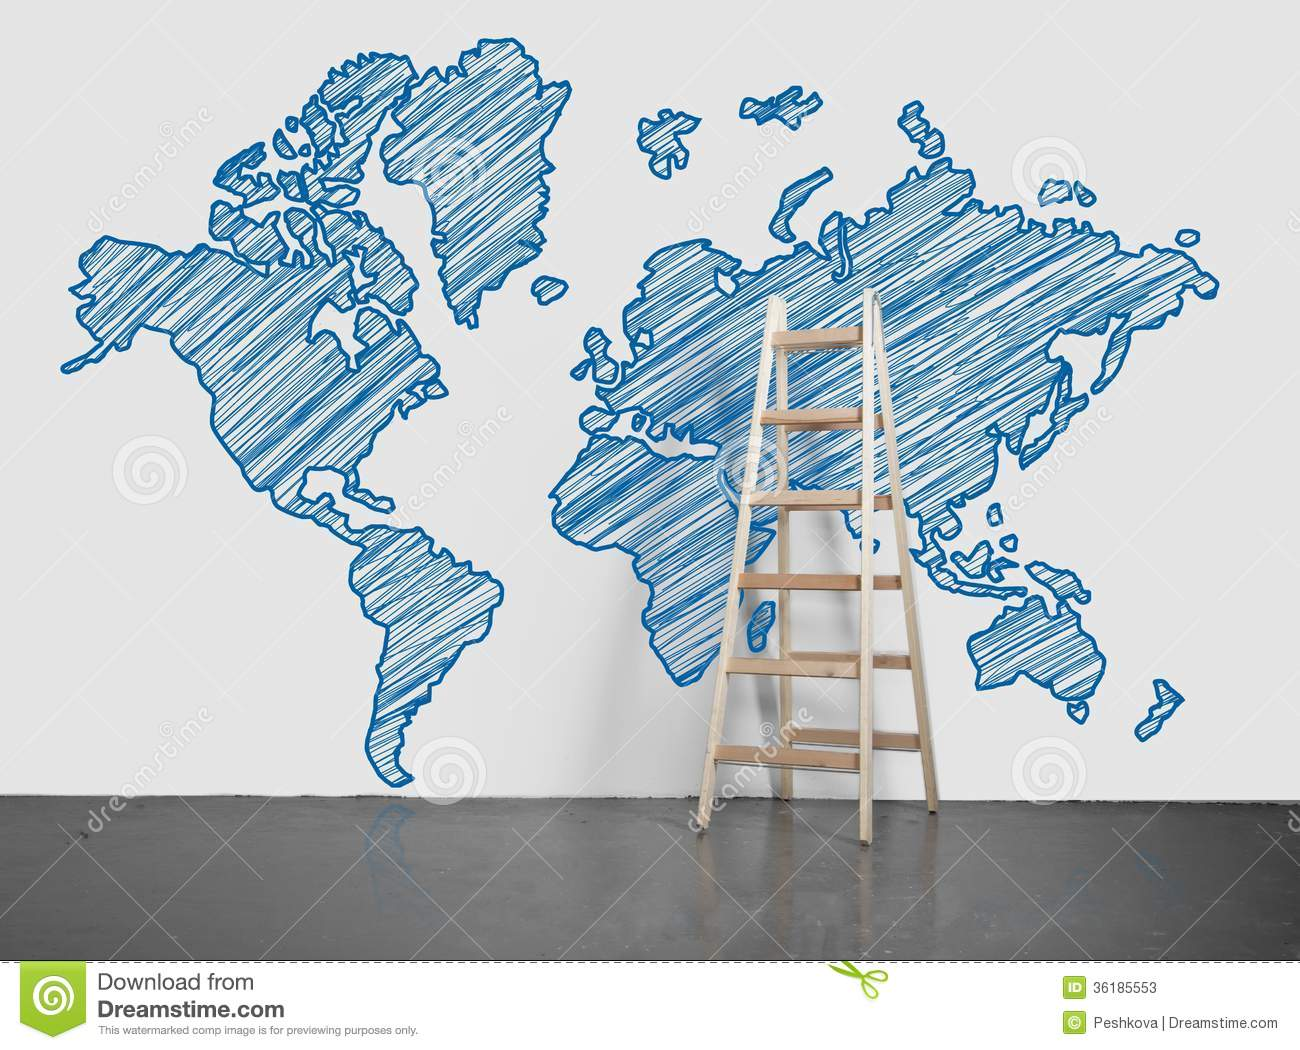 World map on wall stock image image of brainstorming 36185553 world map on wall gumiabroncs Images